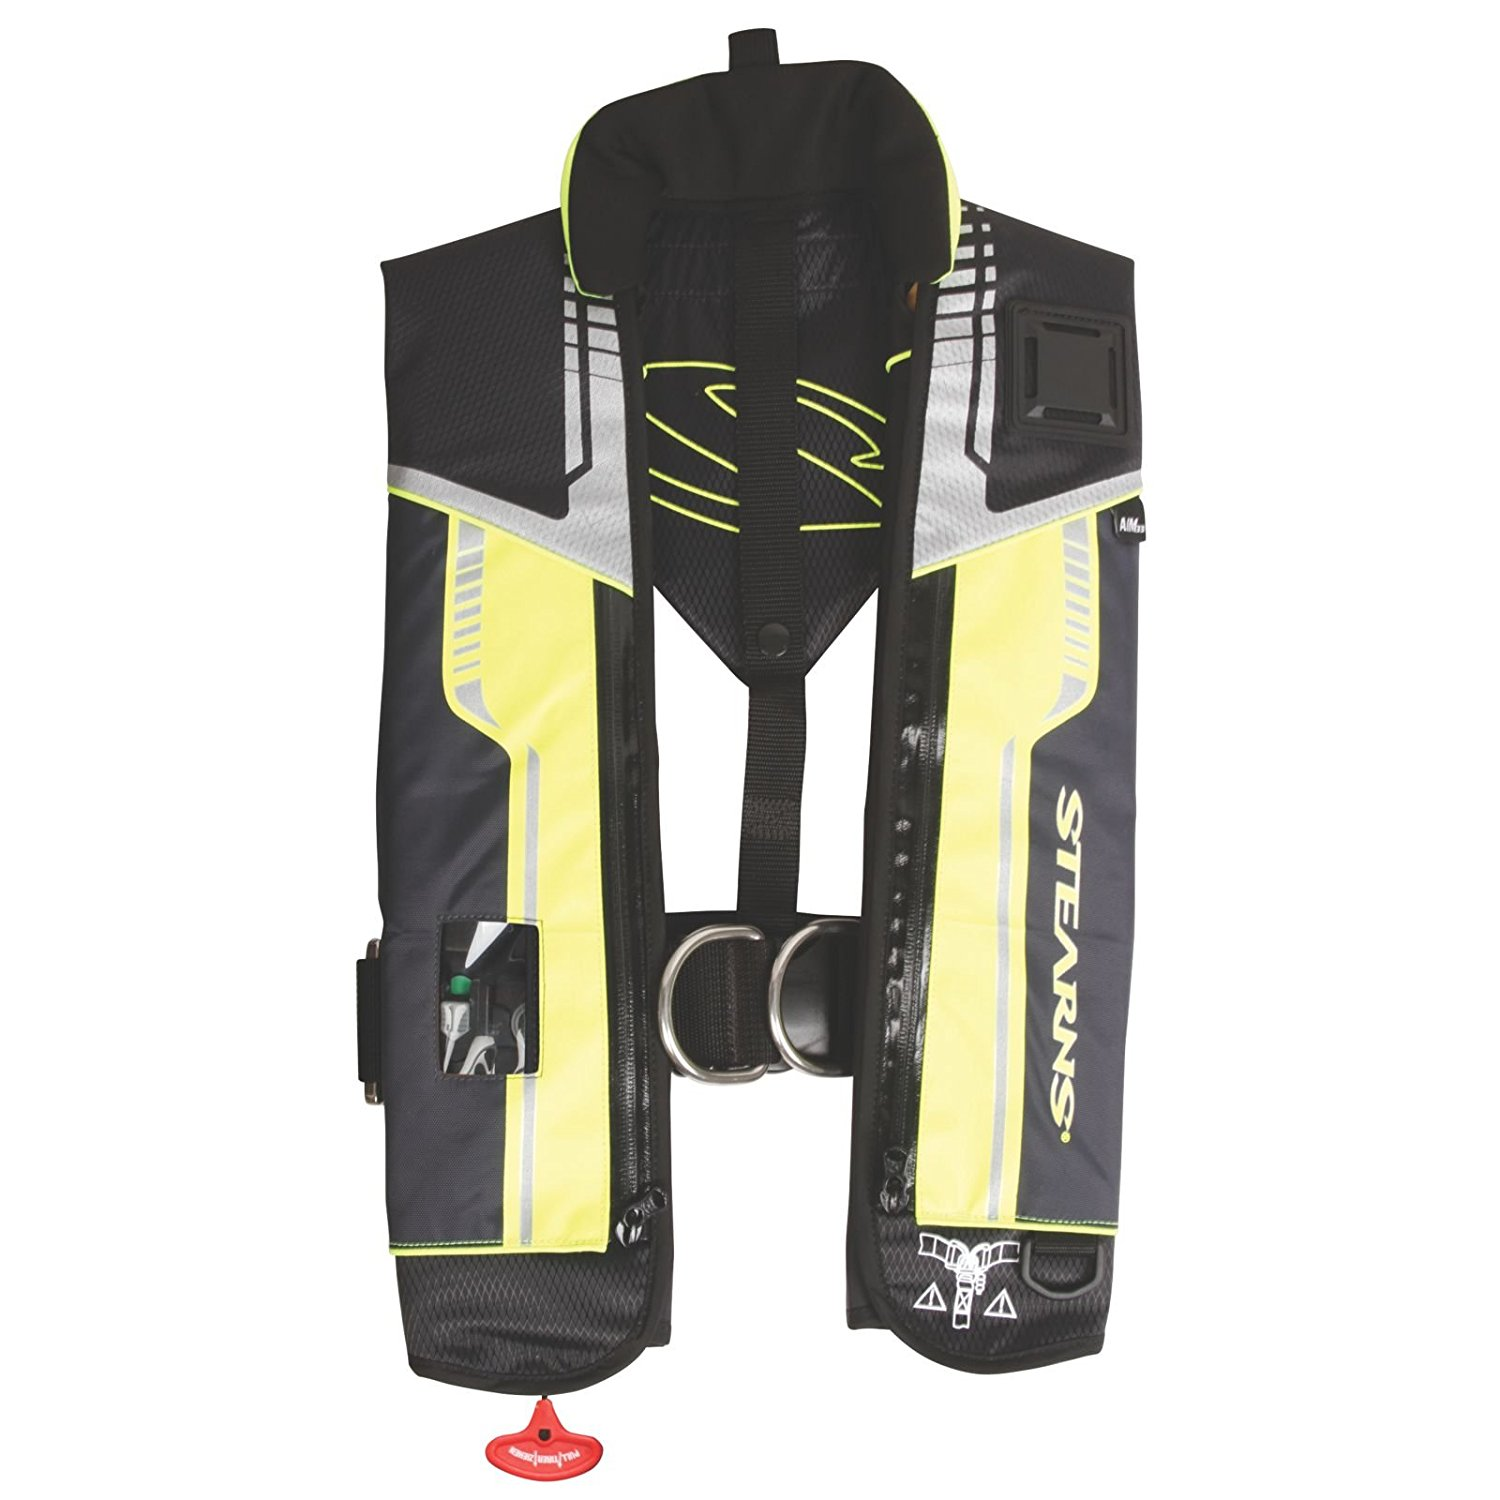 Stearns FastPak 33 Automatic/Manual Inflatable Life Jacket